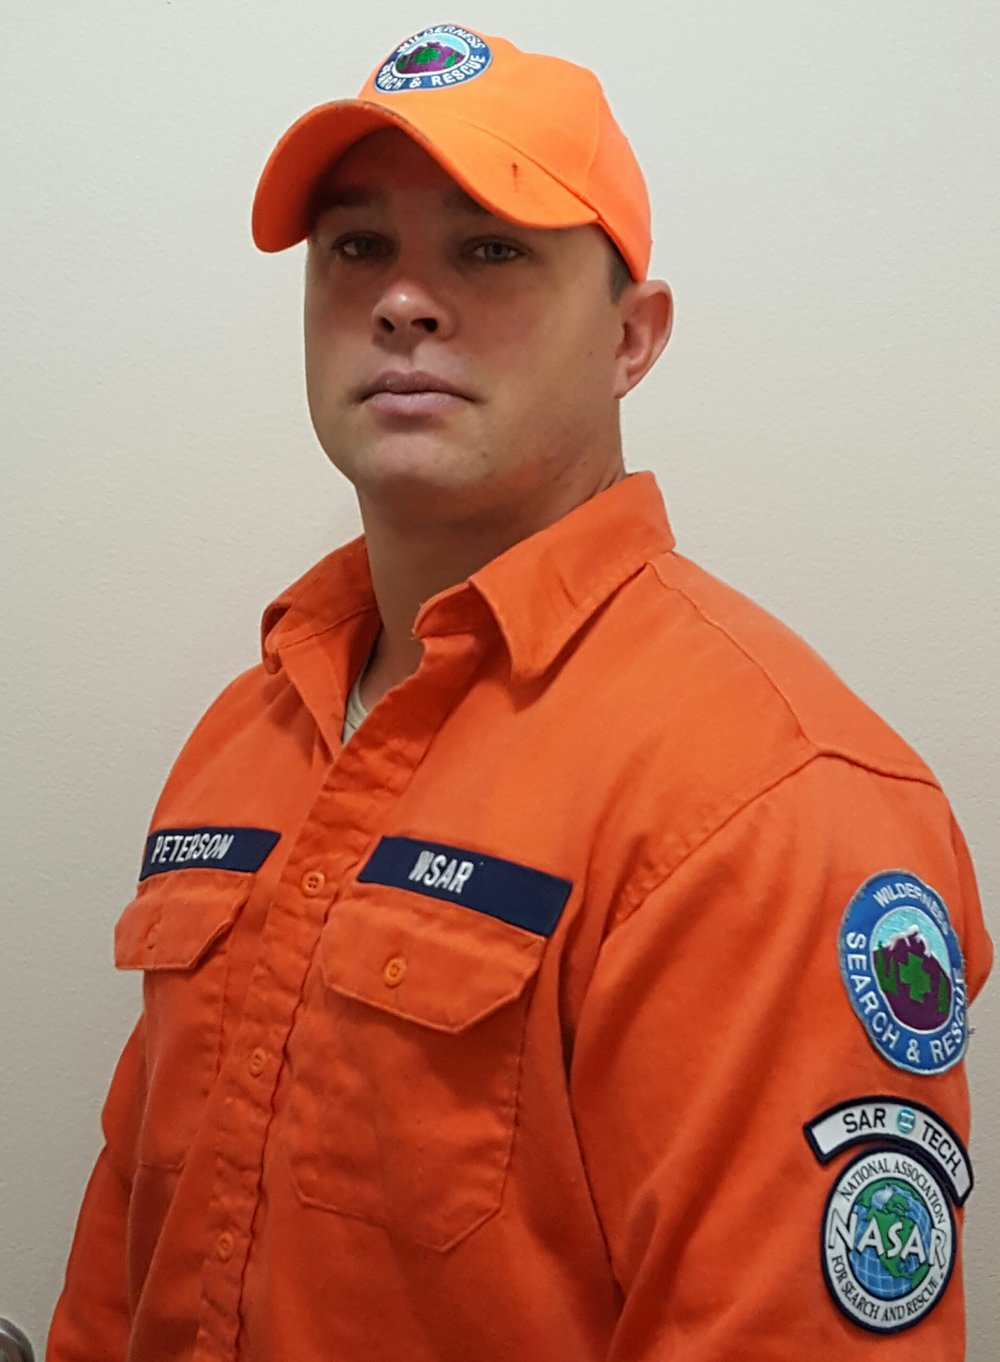 Technical Sergeant Mark Peterson  Eielson Air Force Base 354th CES/CEM As a Wilderness Search and Rescue (WSAR) operational member, TSgt Peterson assists the Alaska State Troopers with lost person incidents anywhere in the State of Alaska.  He is a National Associate for Search and Rescue (NASAR) certified SARTECH II and Tracker III (1 of 14 in the state with both skillsets).  TSgt Peterson has completed several hours of intense training that covers advanced land navigation, search techniques, advanced tracking skills, intro to incident command, small unit leadership, crew safety, SAR dog tactics, traversing hazardous terrain and improvised crew transport.  He is also working toward his public safety diver certification for the search and recovery of persons and objects under water.  It is the first team of its kind in the North Star Borough area.